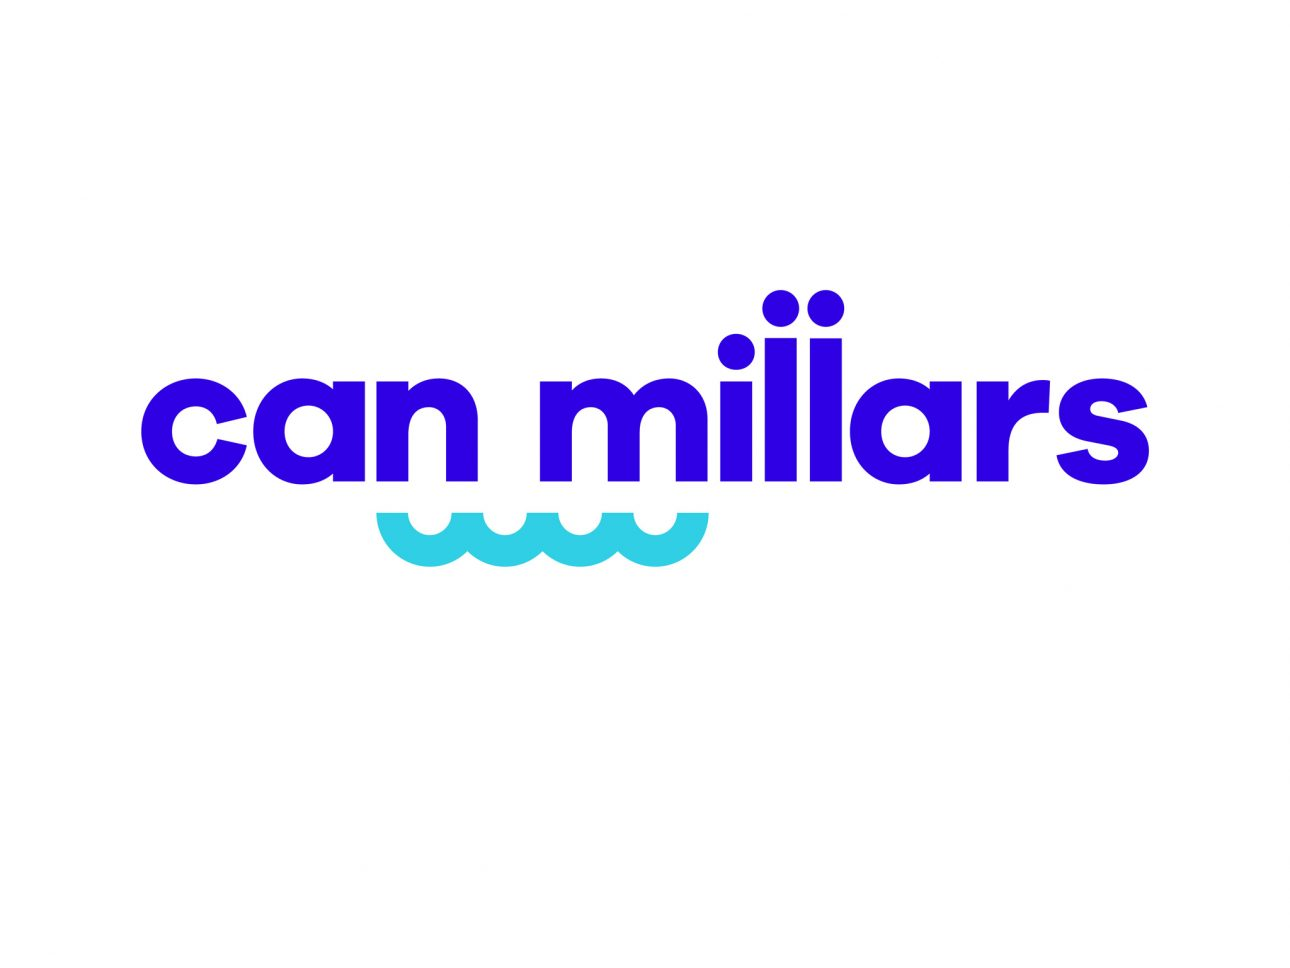 SD_CAN-MILLARS_04